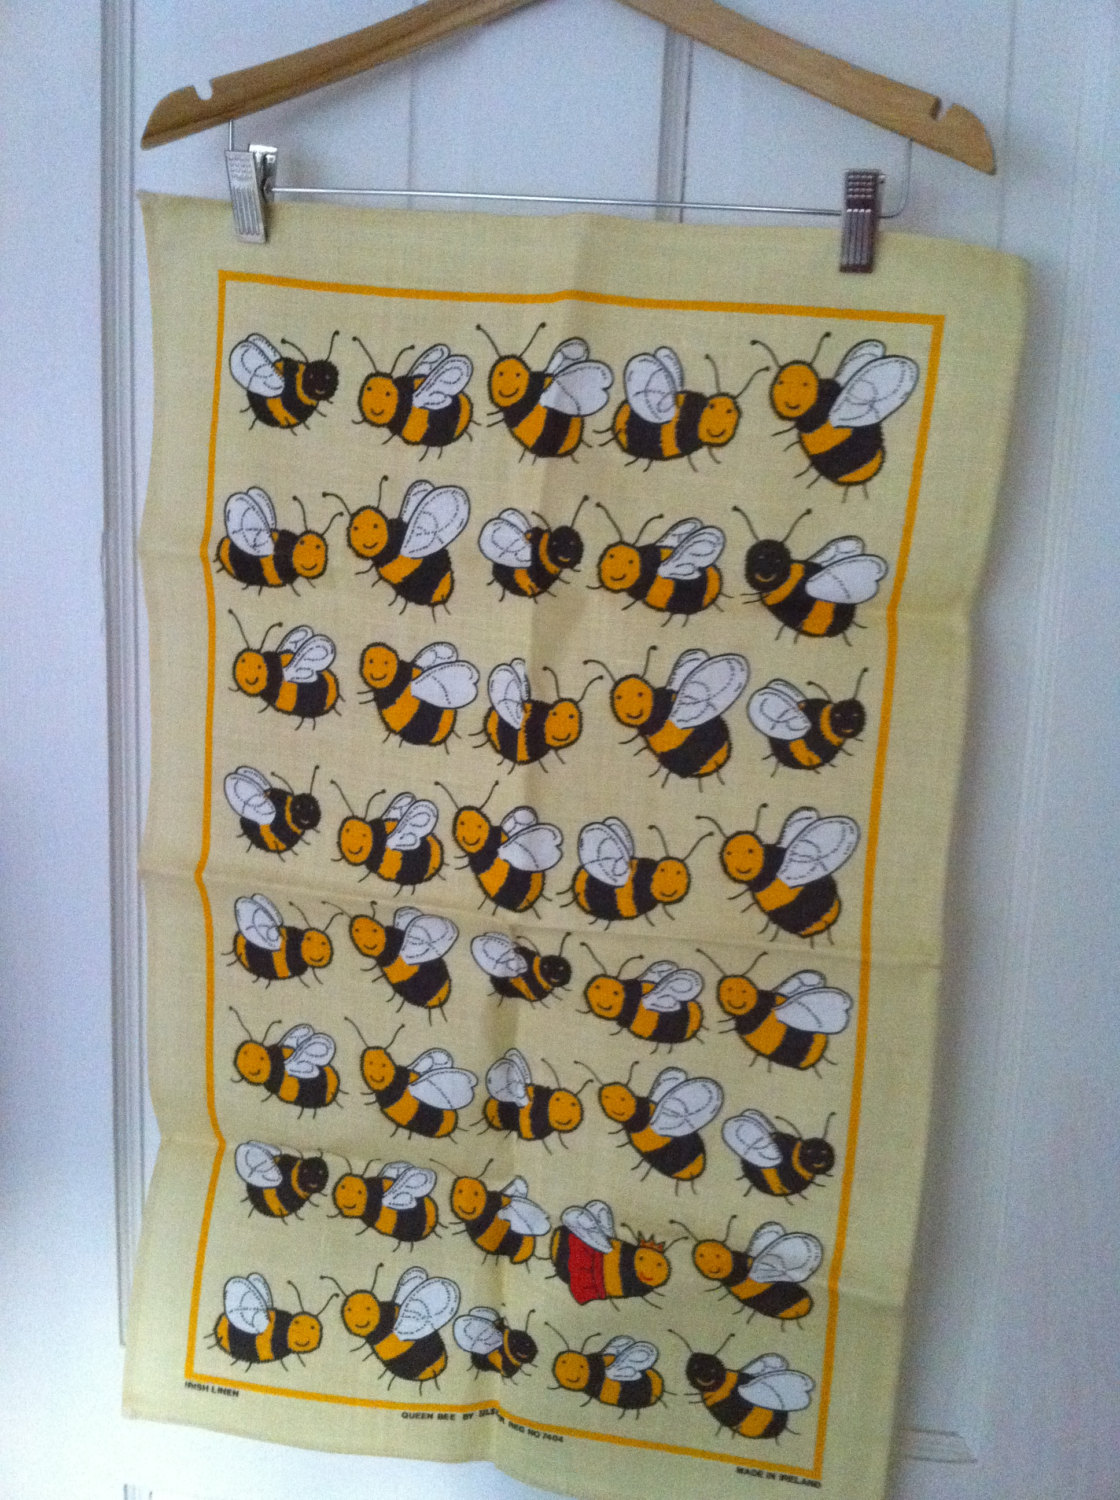 Bee print tea towel how did you make your way into my very sophisticated post??? Ha ha super sweet